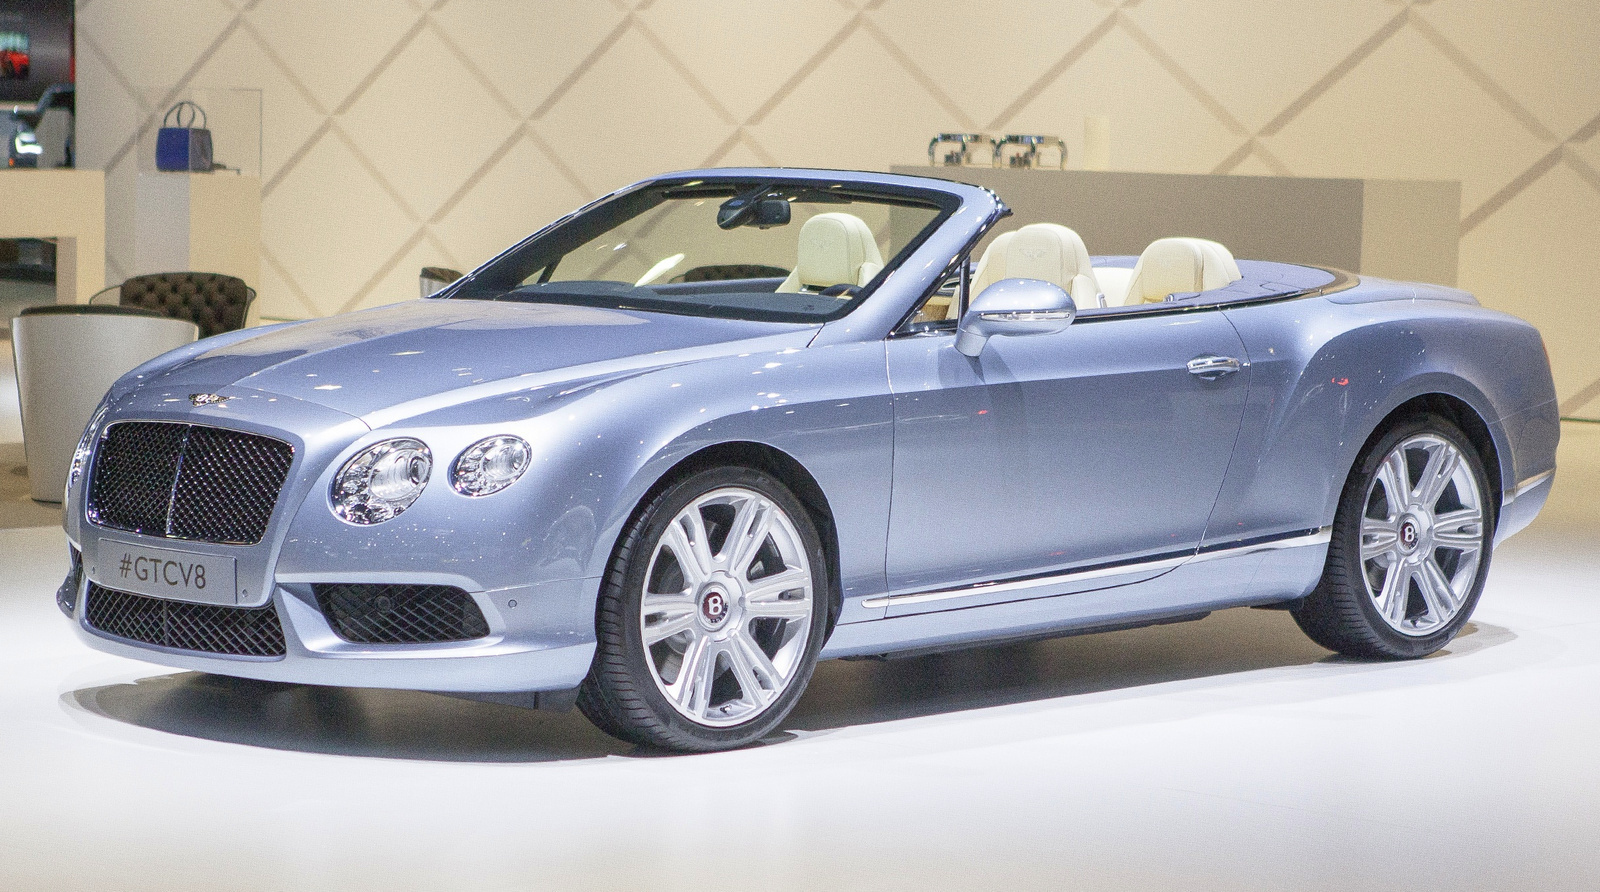 continental convertible autoblog coupe gtc review price spin quick bentley